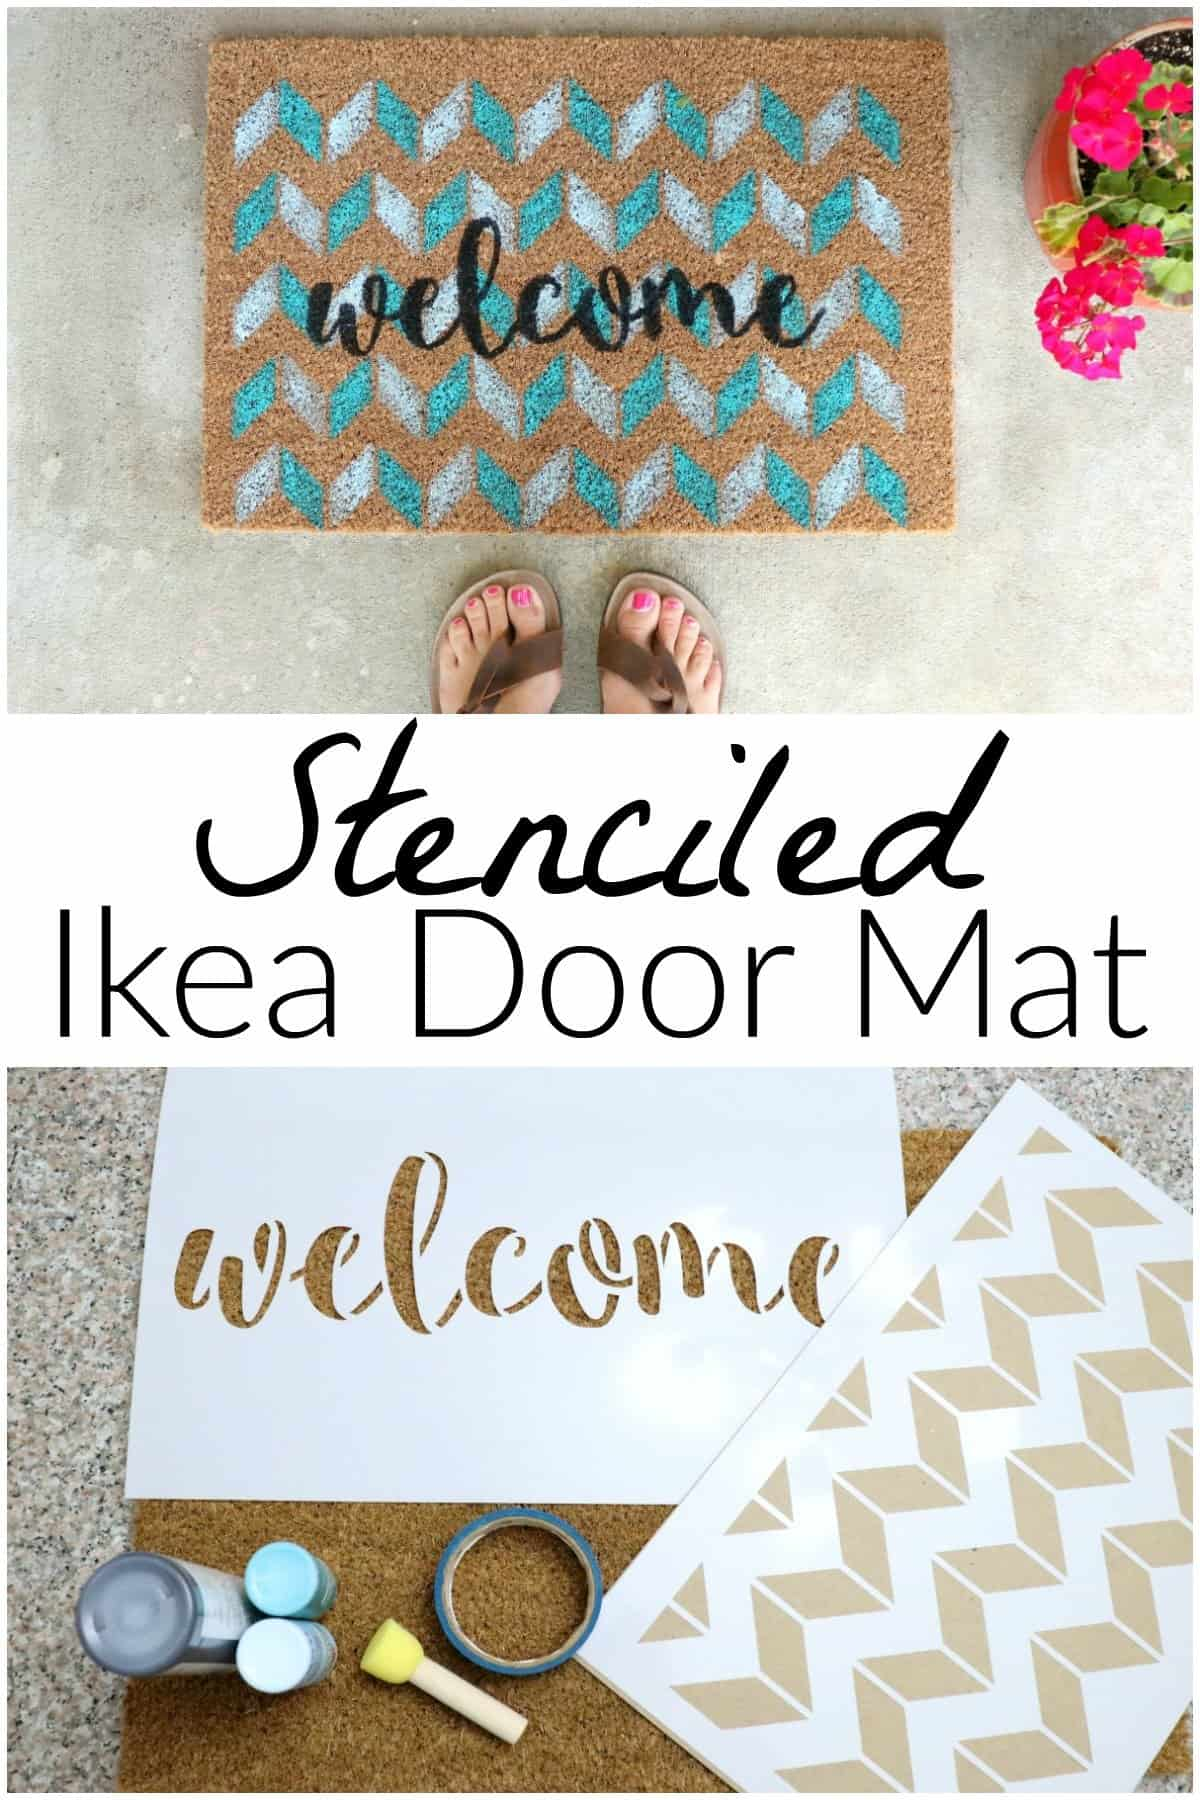 Make this stenciled Ikea door mat by layering 2 stencils